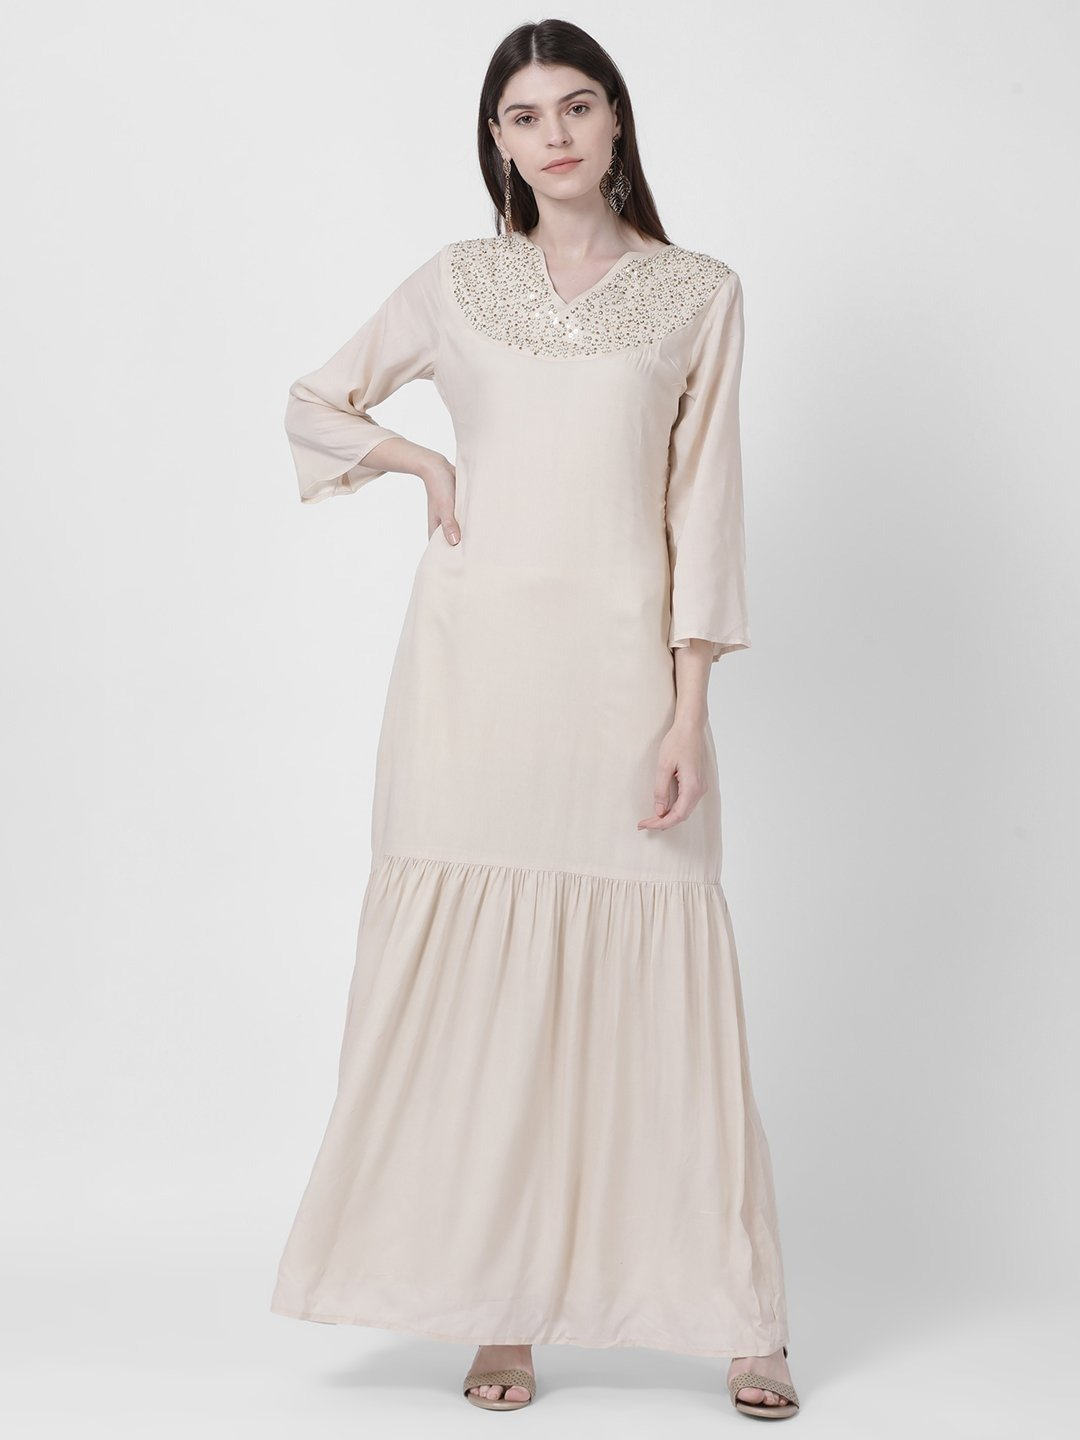 IVORY BEIGE EMBELLISHED NECK MAXI DRESS - Rossbelle